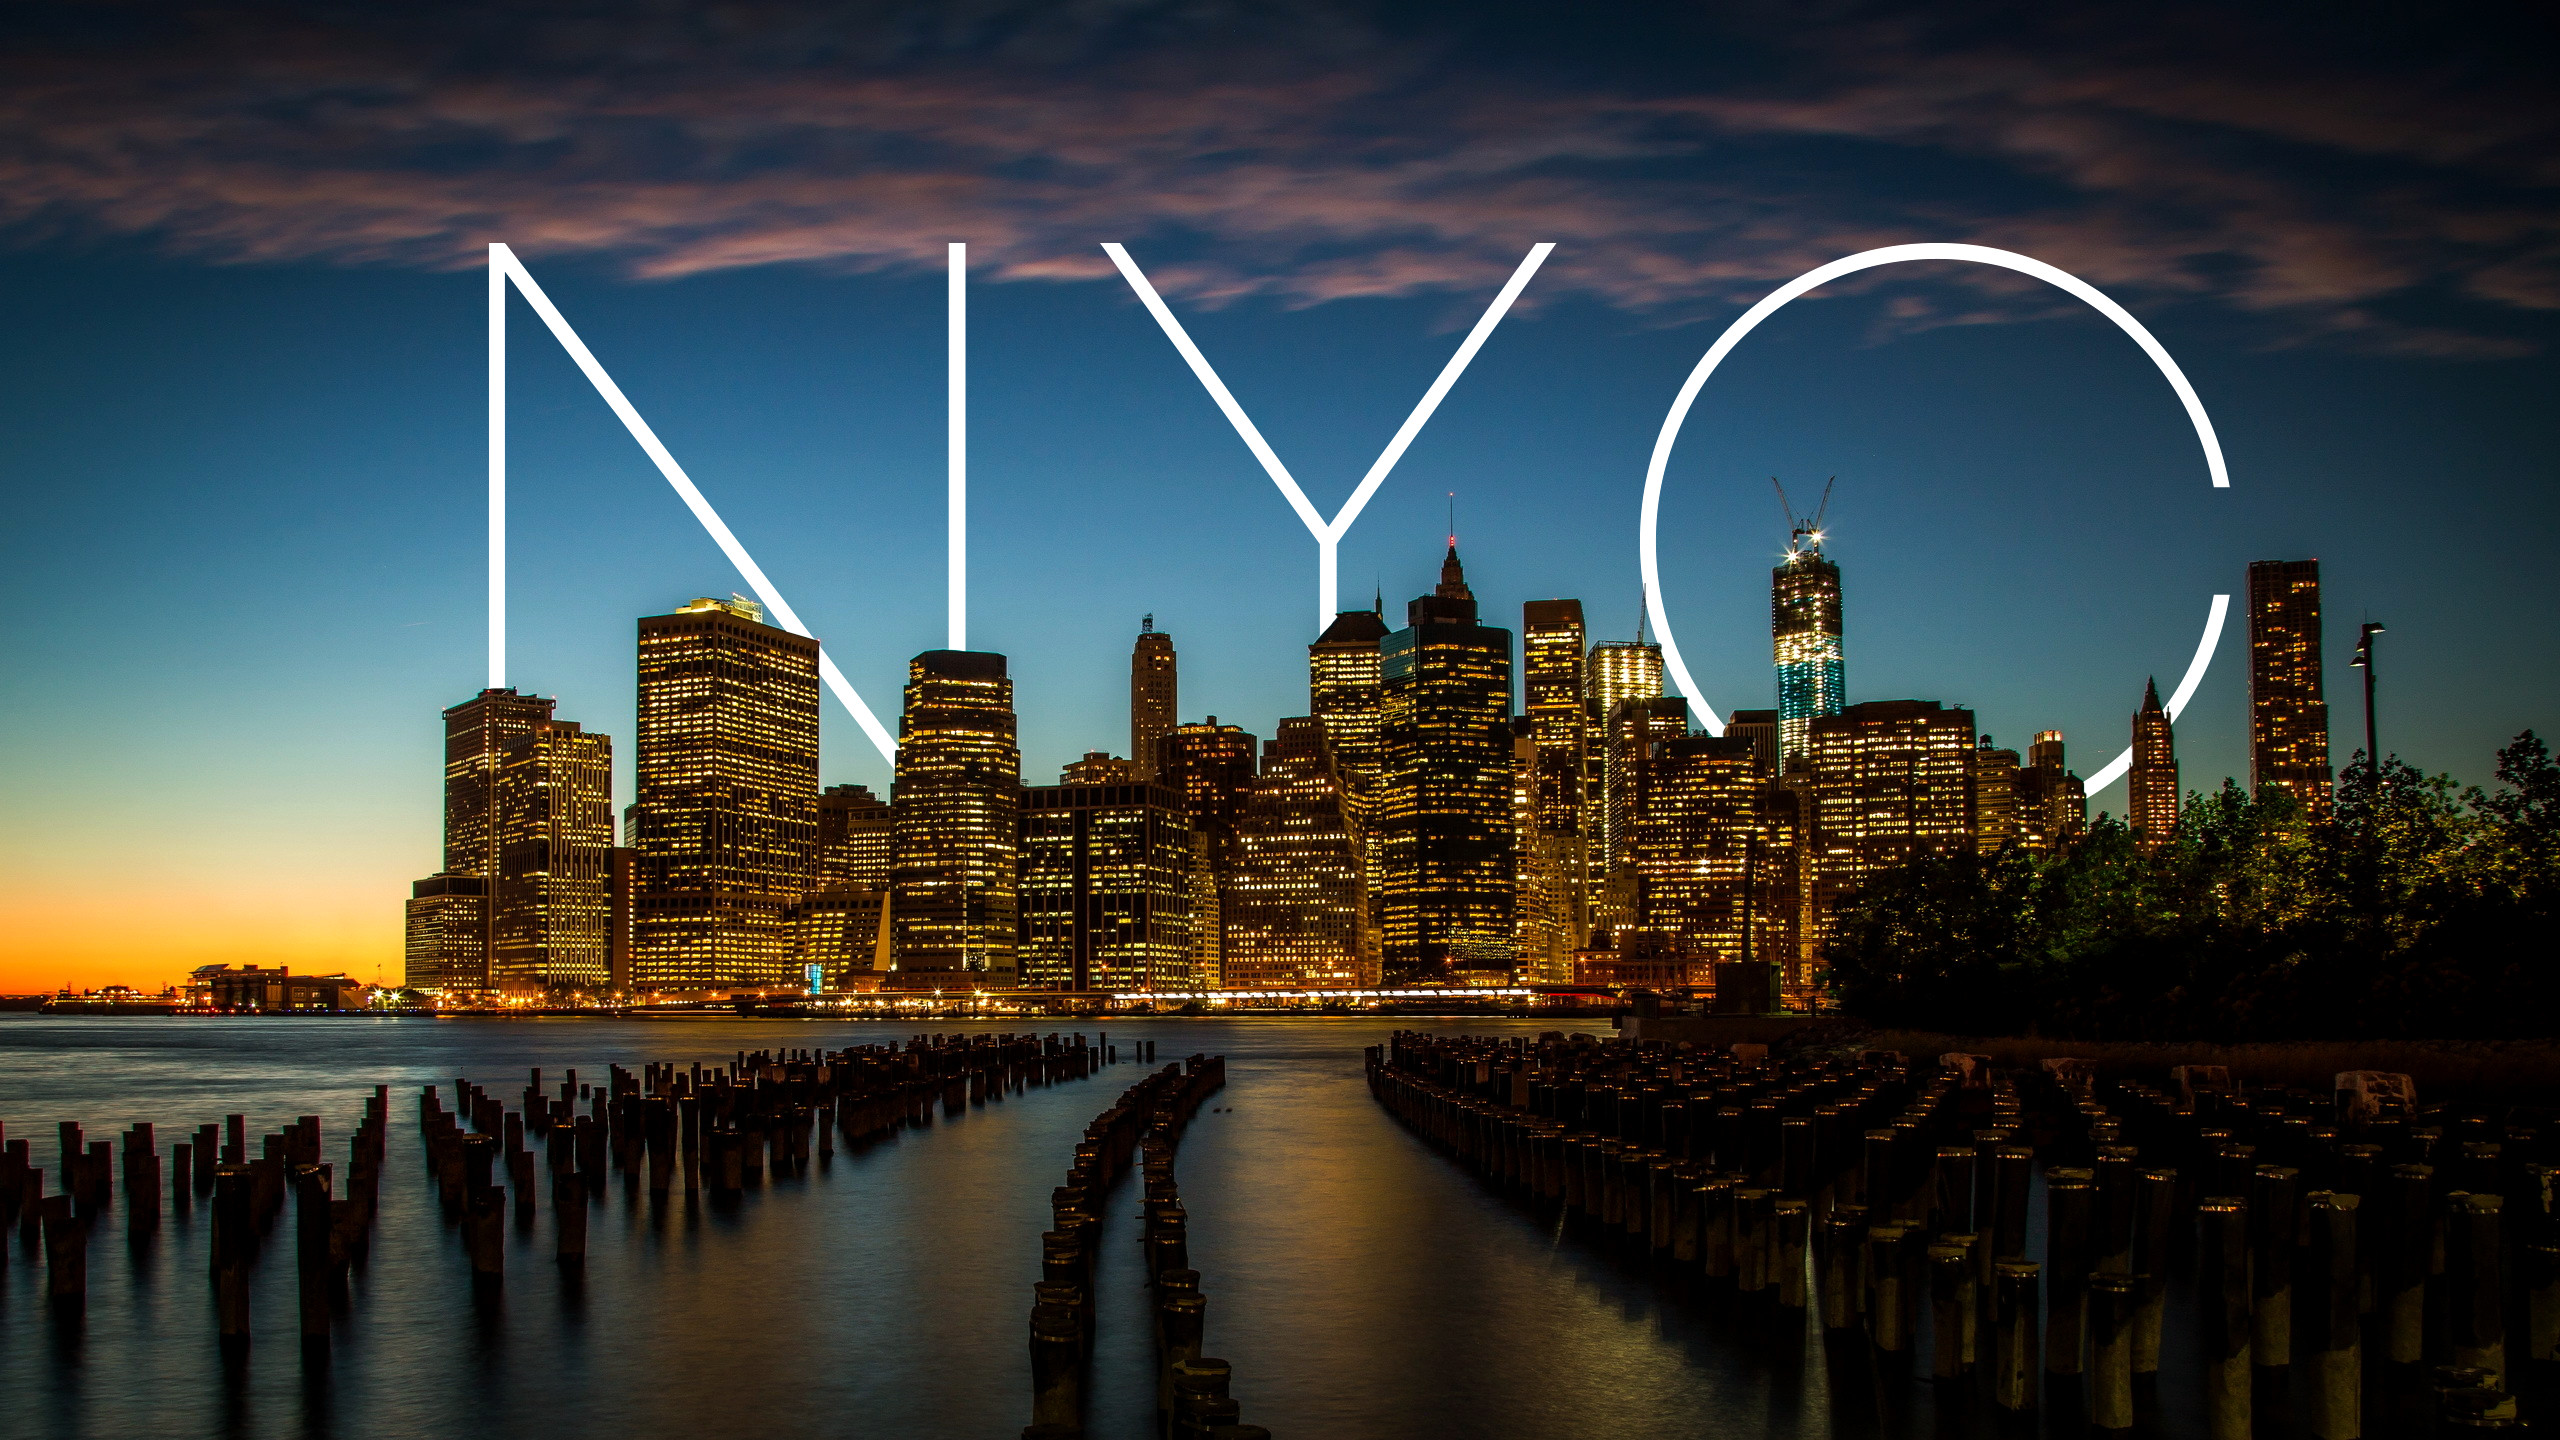 … New York City Backgrounds, HQ, Tad Caplinger …